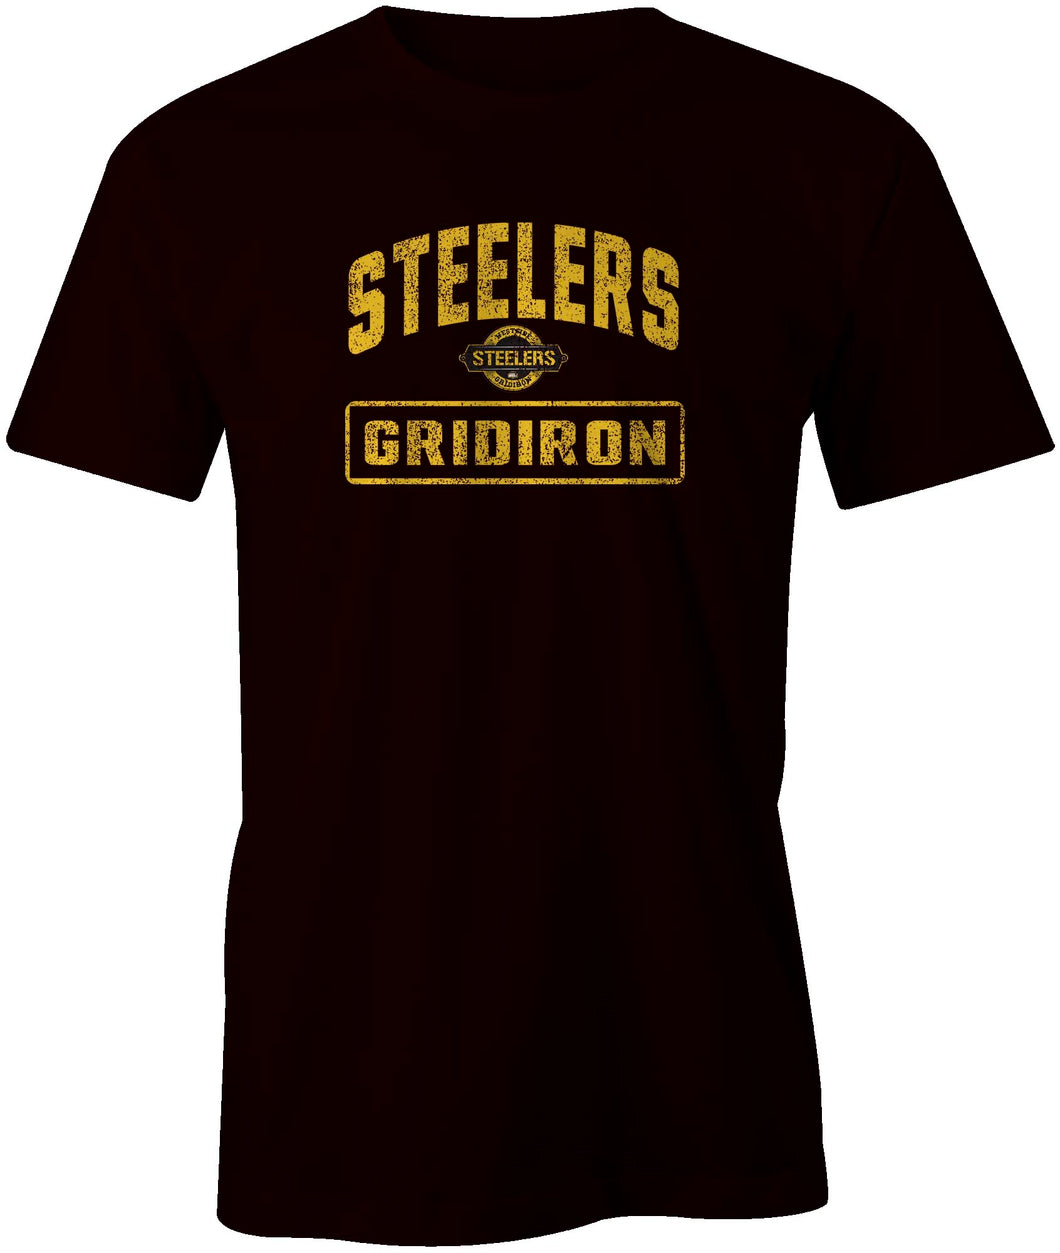 Westside Steelers Distressed Style T-Shirt